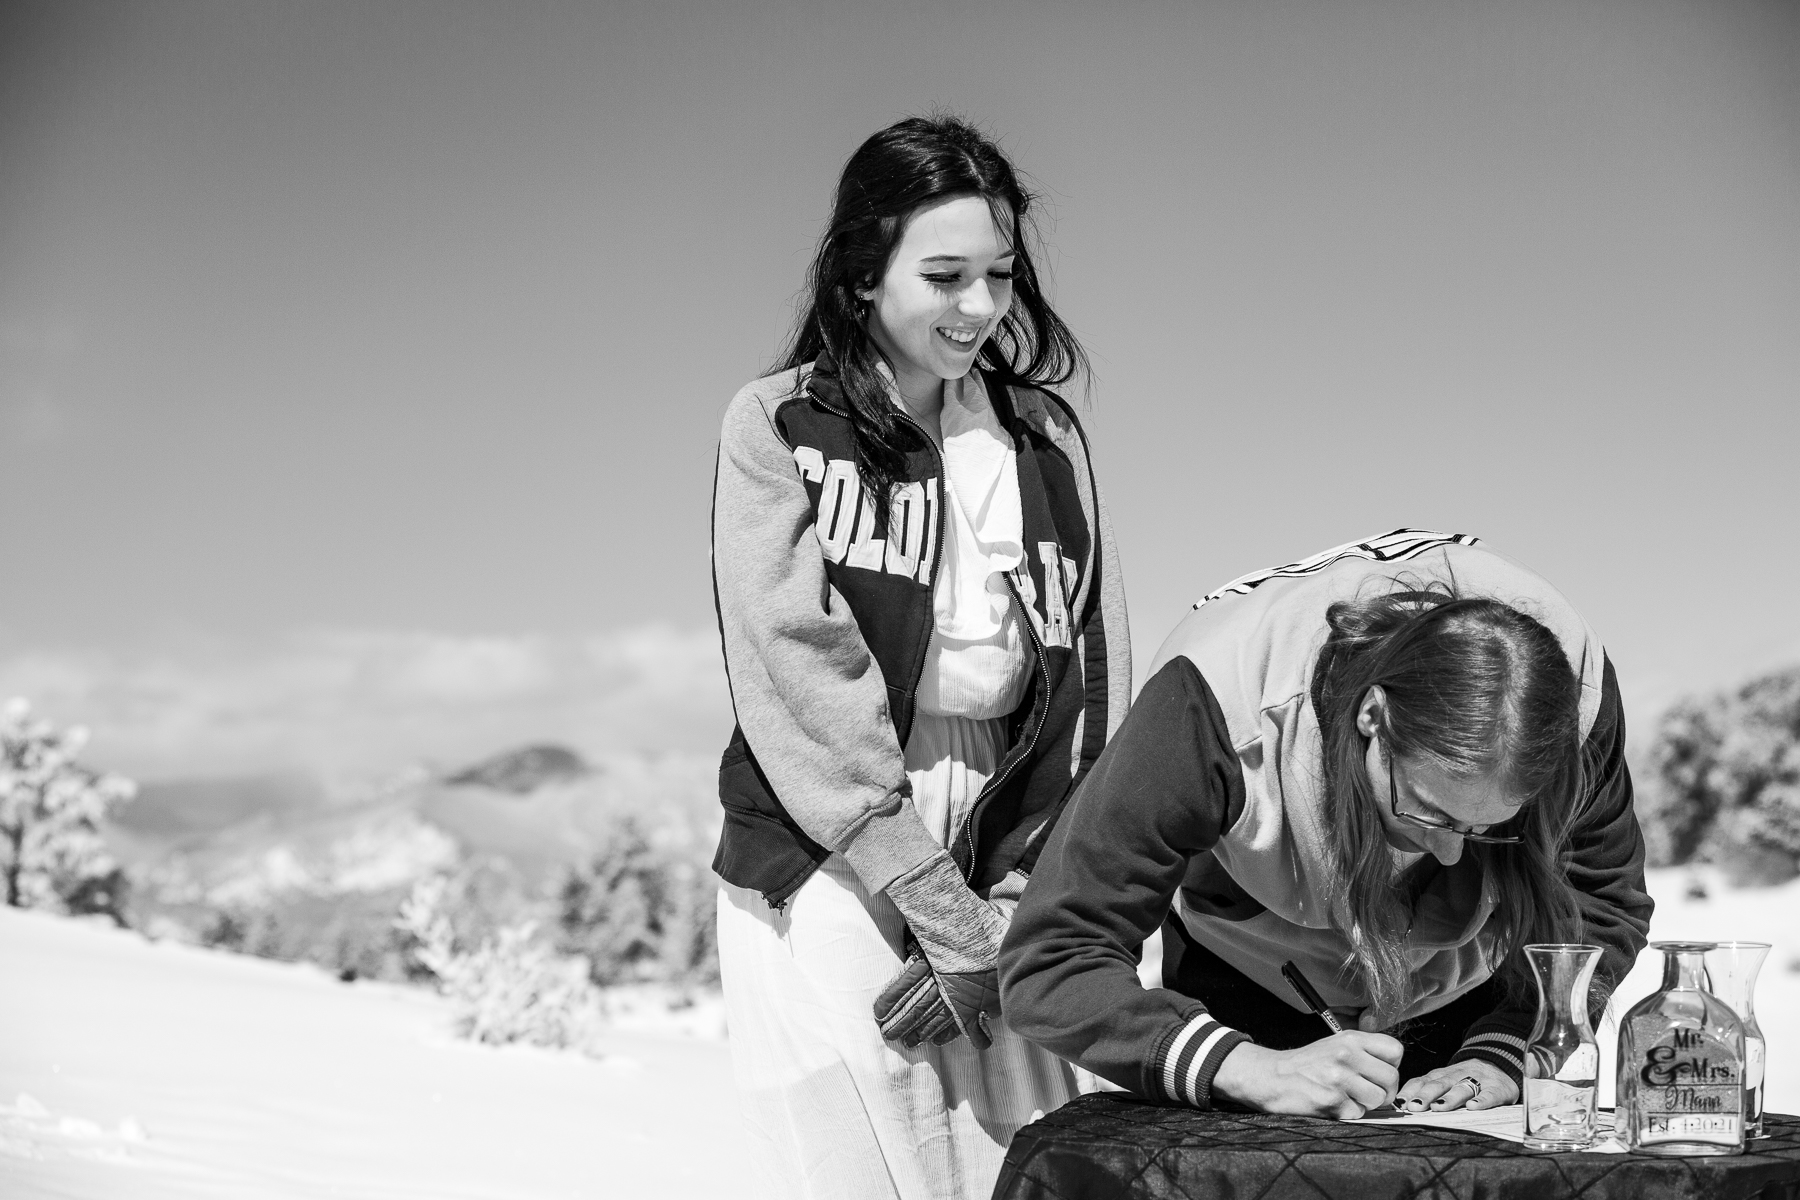 Colorado Mountains Wedding Photo in BW | The couple giggles and jokes together